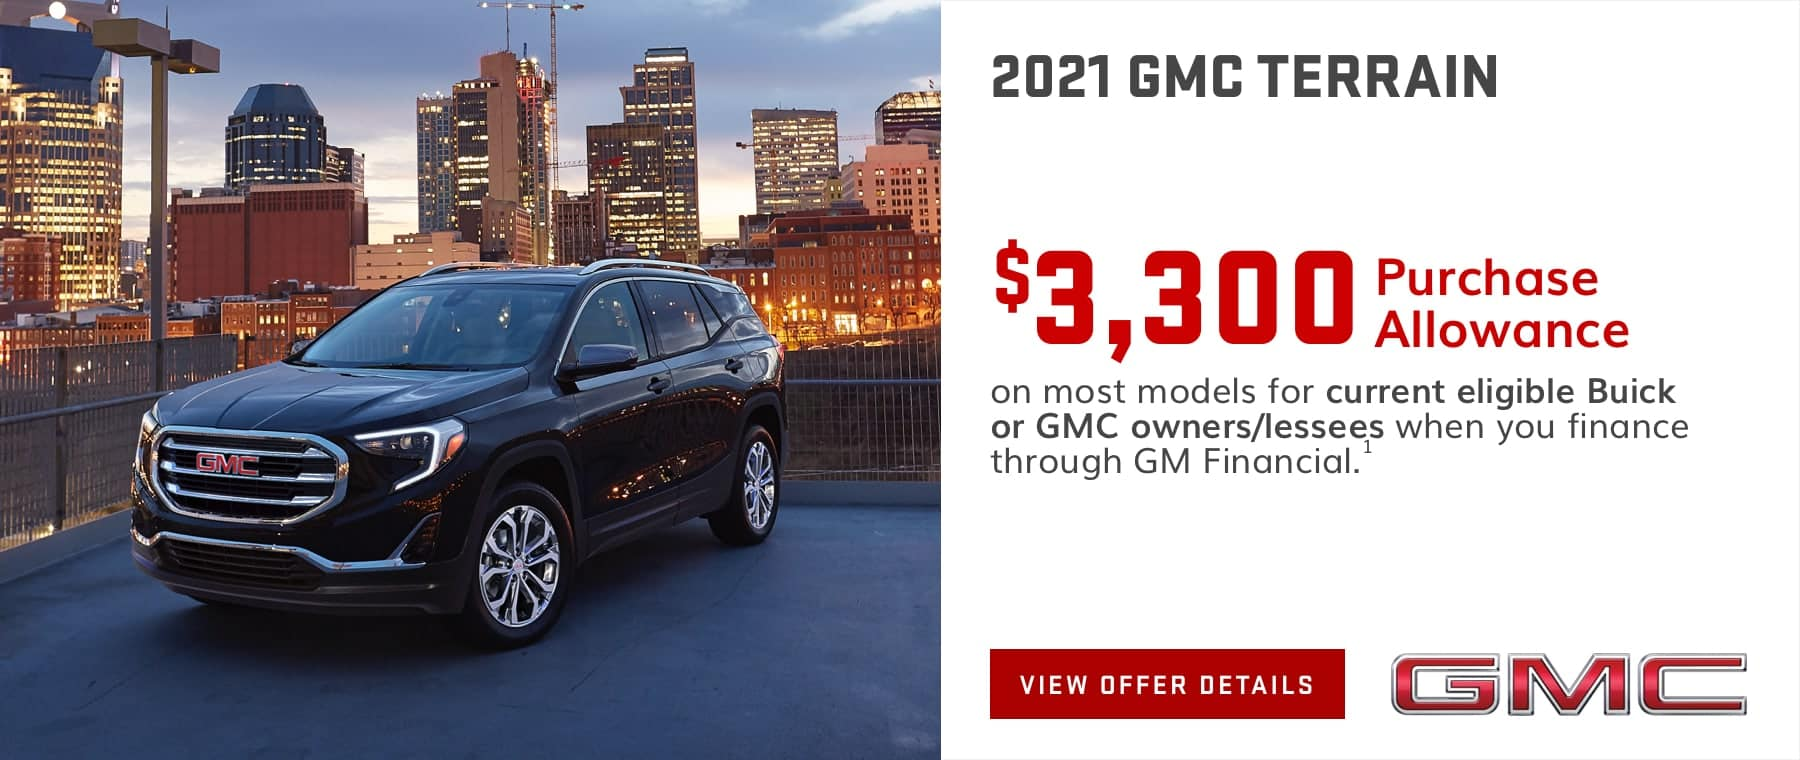 $3,300 Purchase Allowance on most models for current eligible Buick or GMC owners/lessees when you finance through GM Financial.1